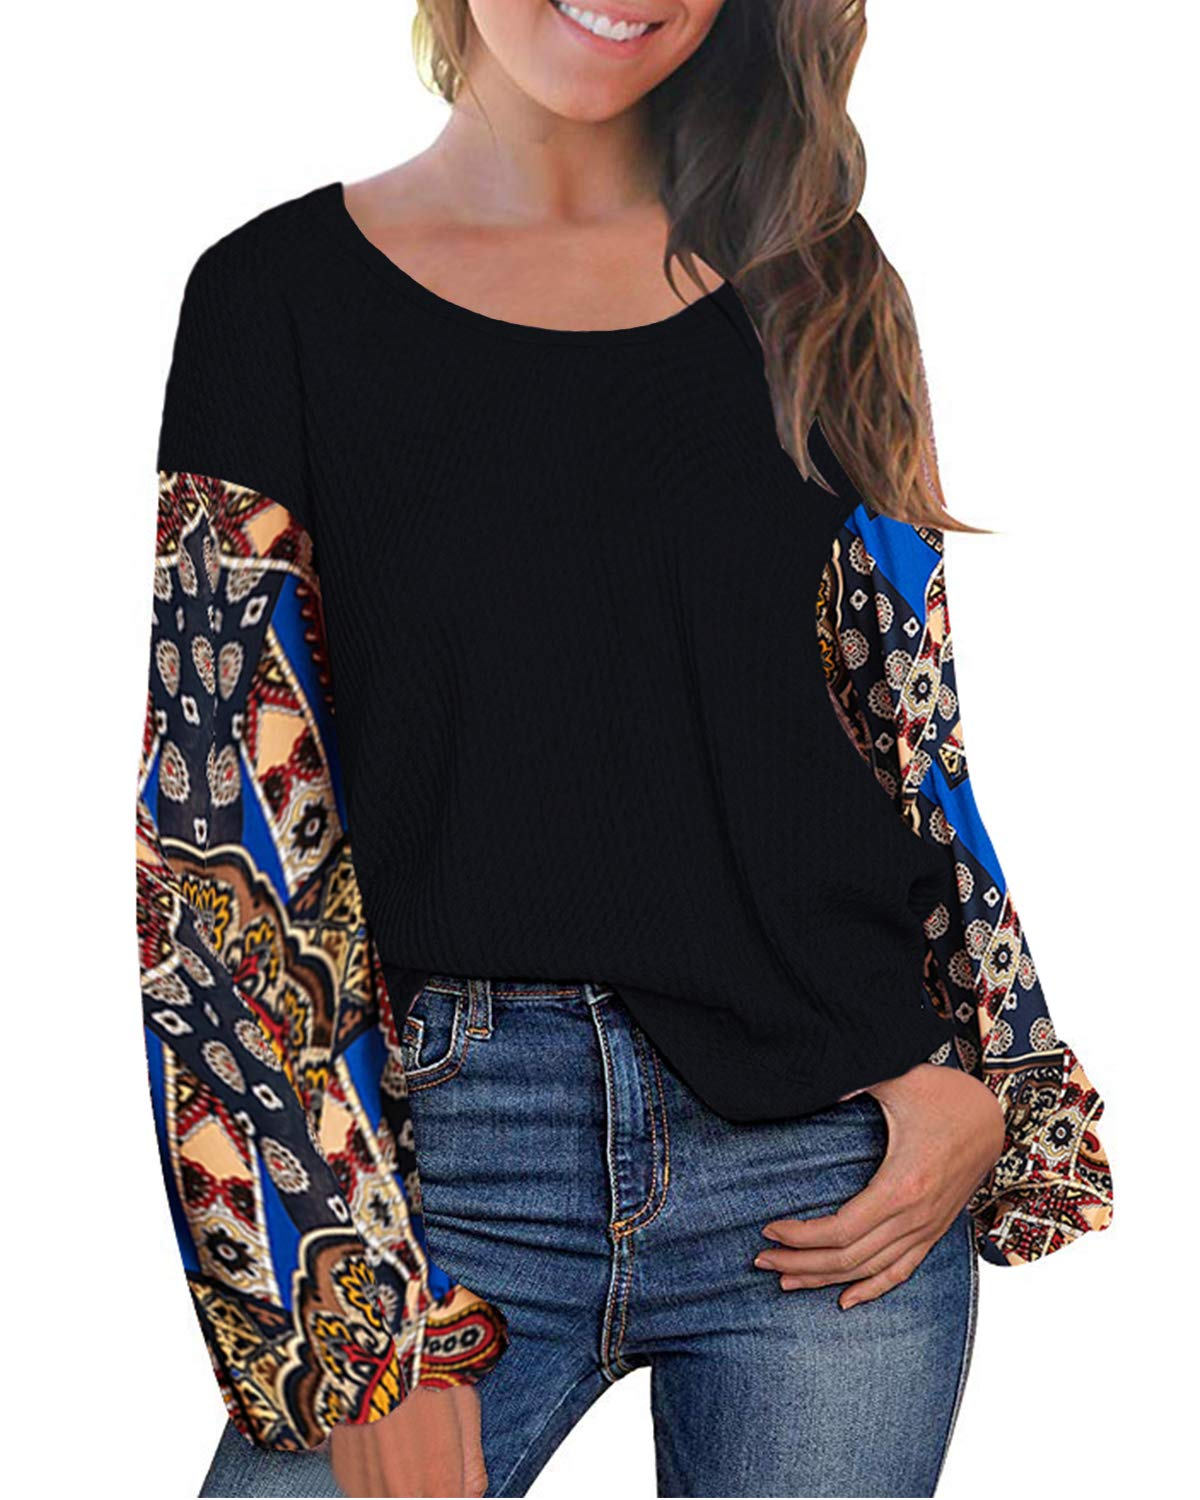 LeMarnia Boho Clothing for Women, Ladies Crewneck Puff Sleeve Patchwork Shirts Floral Print Casual Knit Tops Loose Pullover Sweatshirt Black S